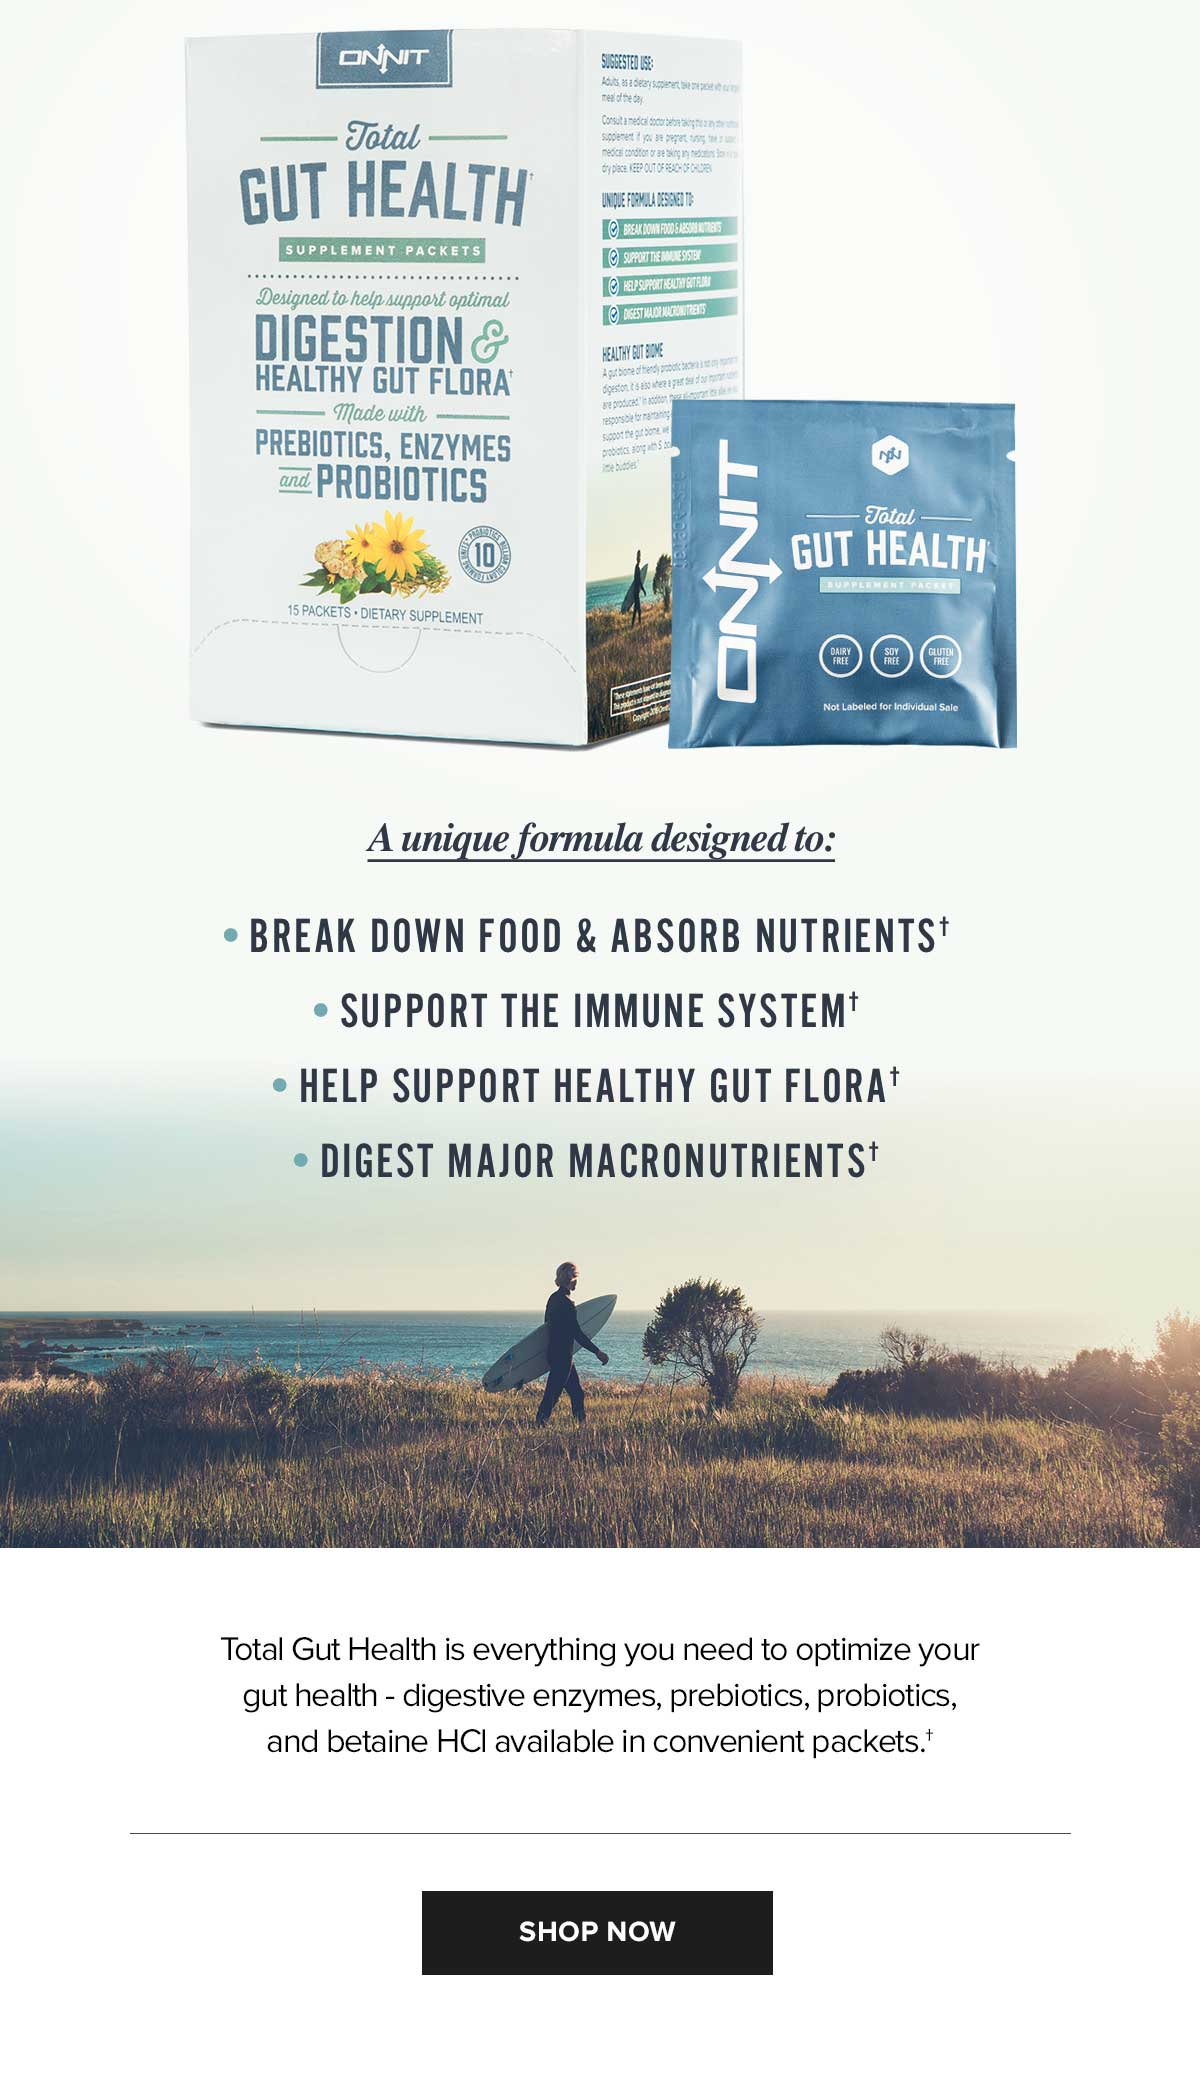 Introducing the Total Gut Health Supplement Packets